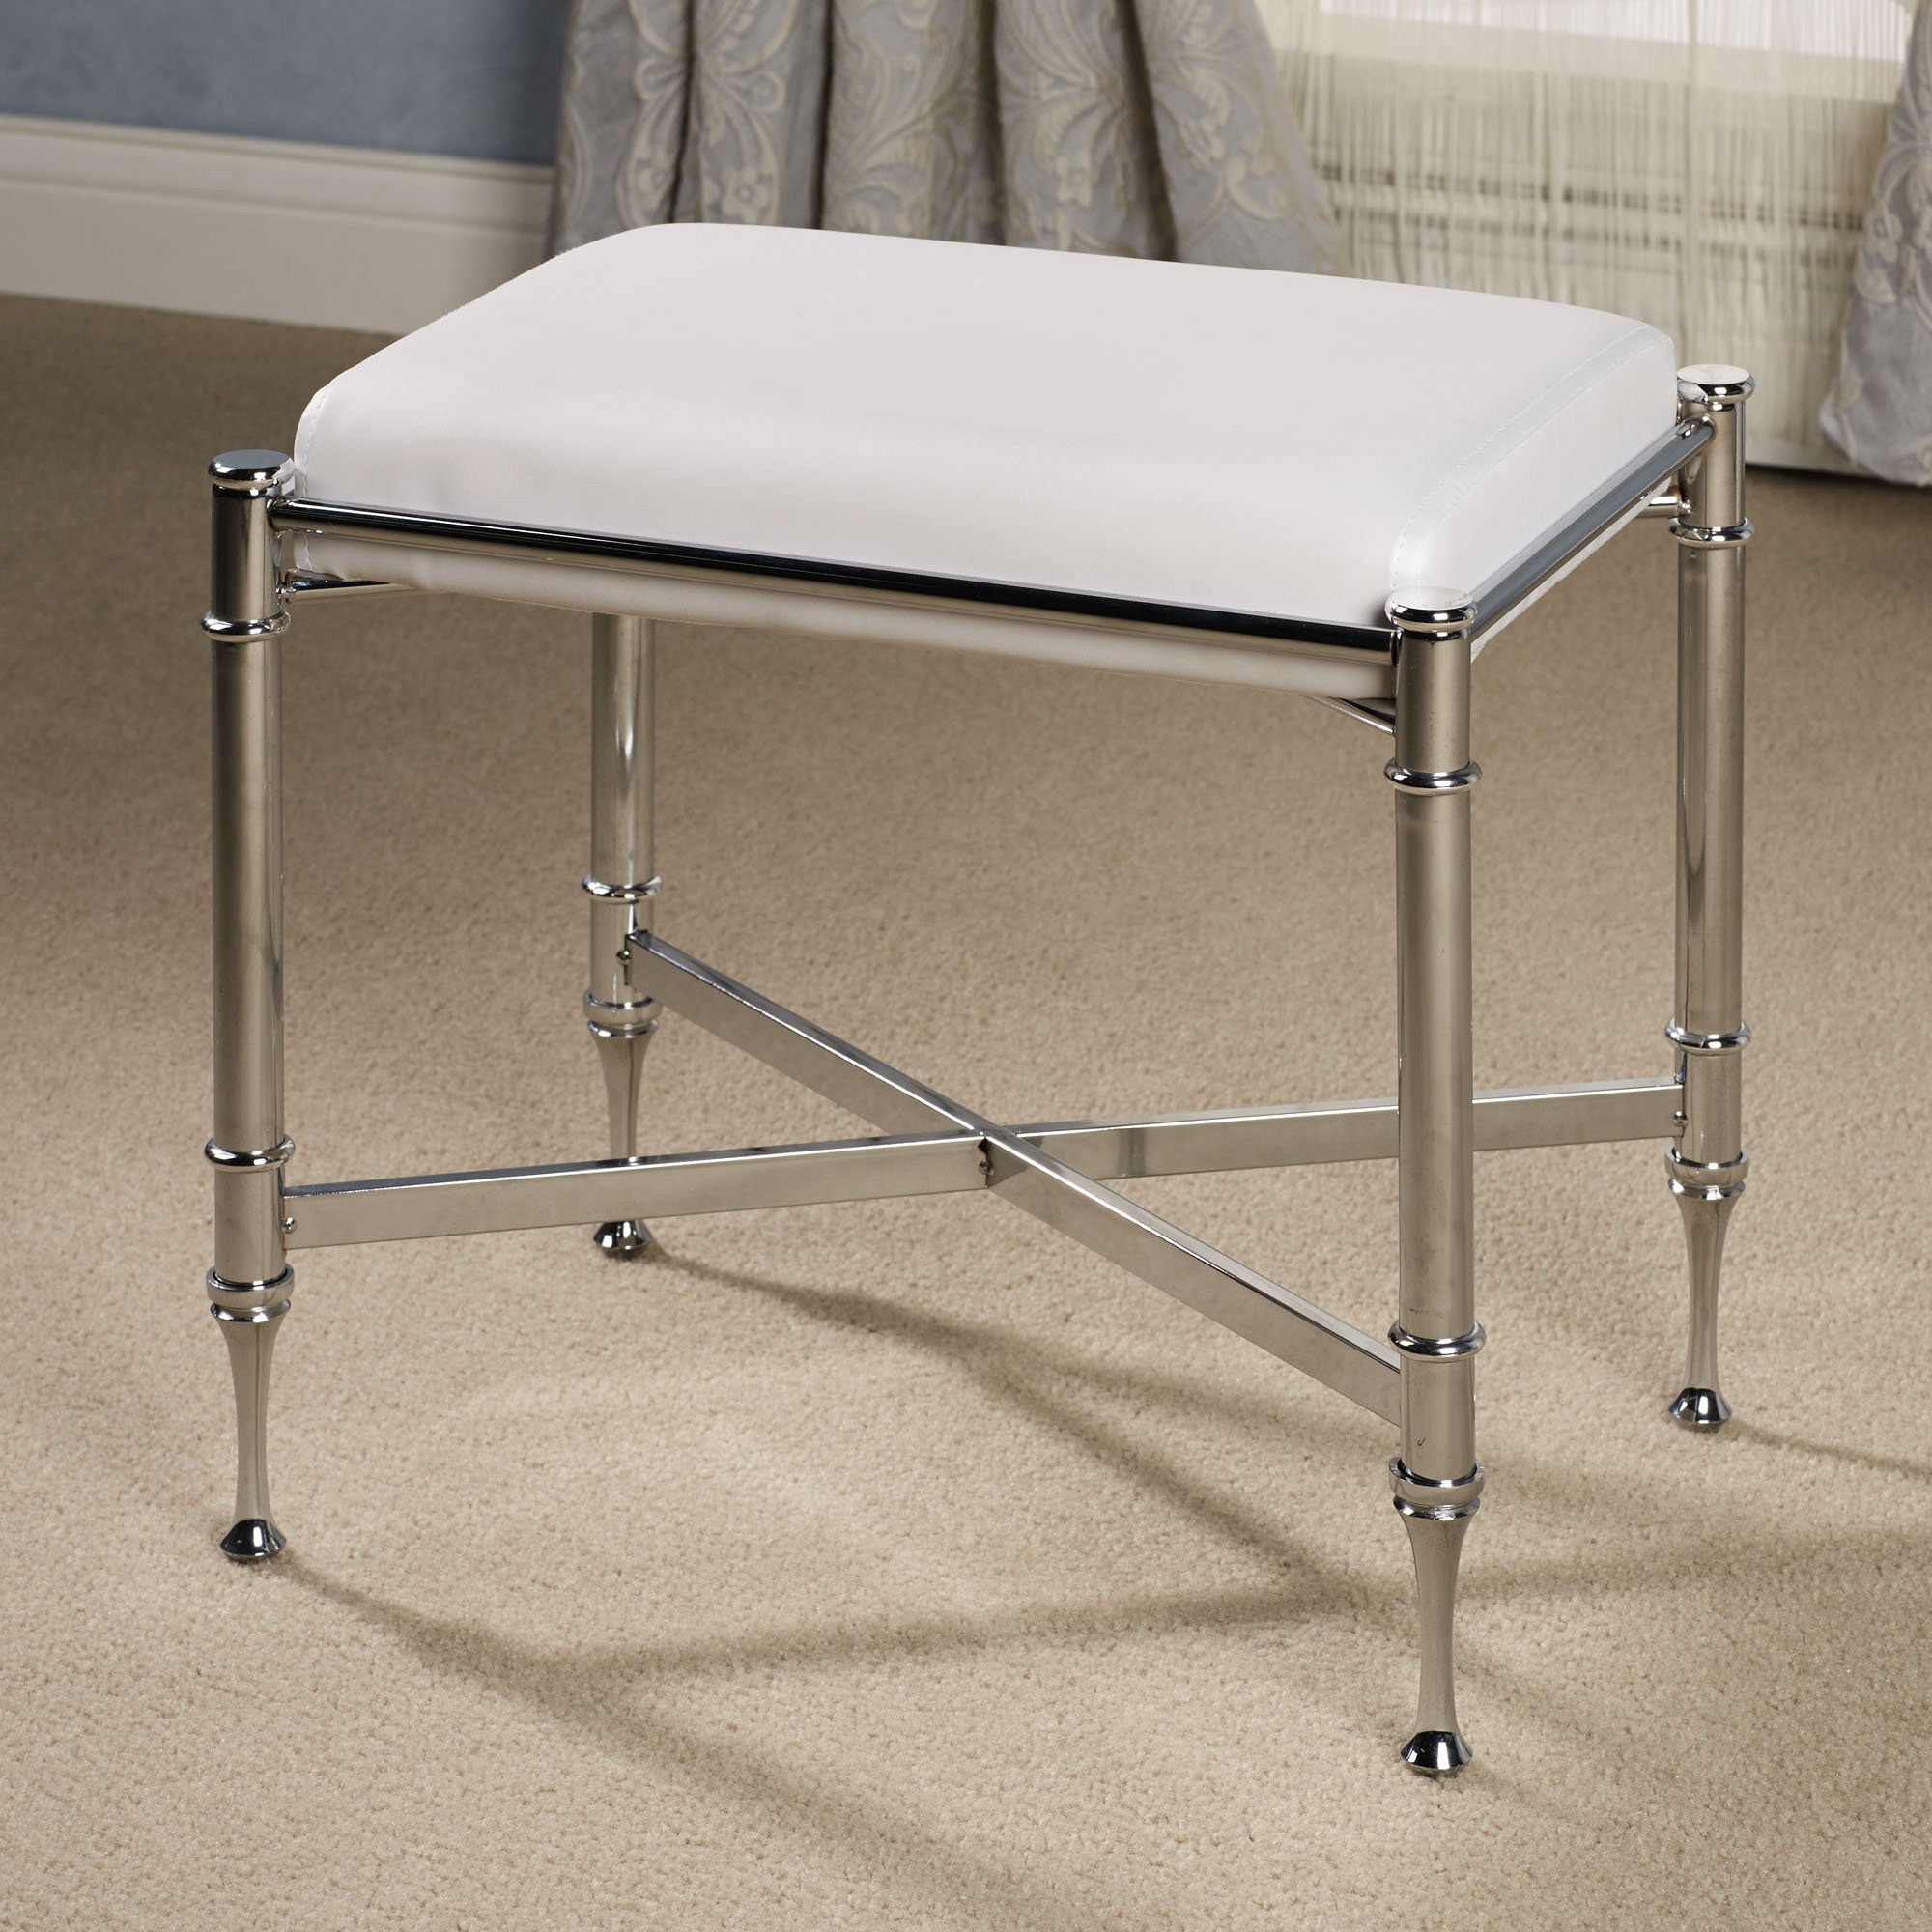 Transfer Bench | Shower Benches for Disabled | Transfer Tub Bench